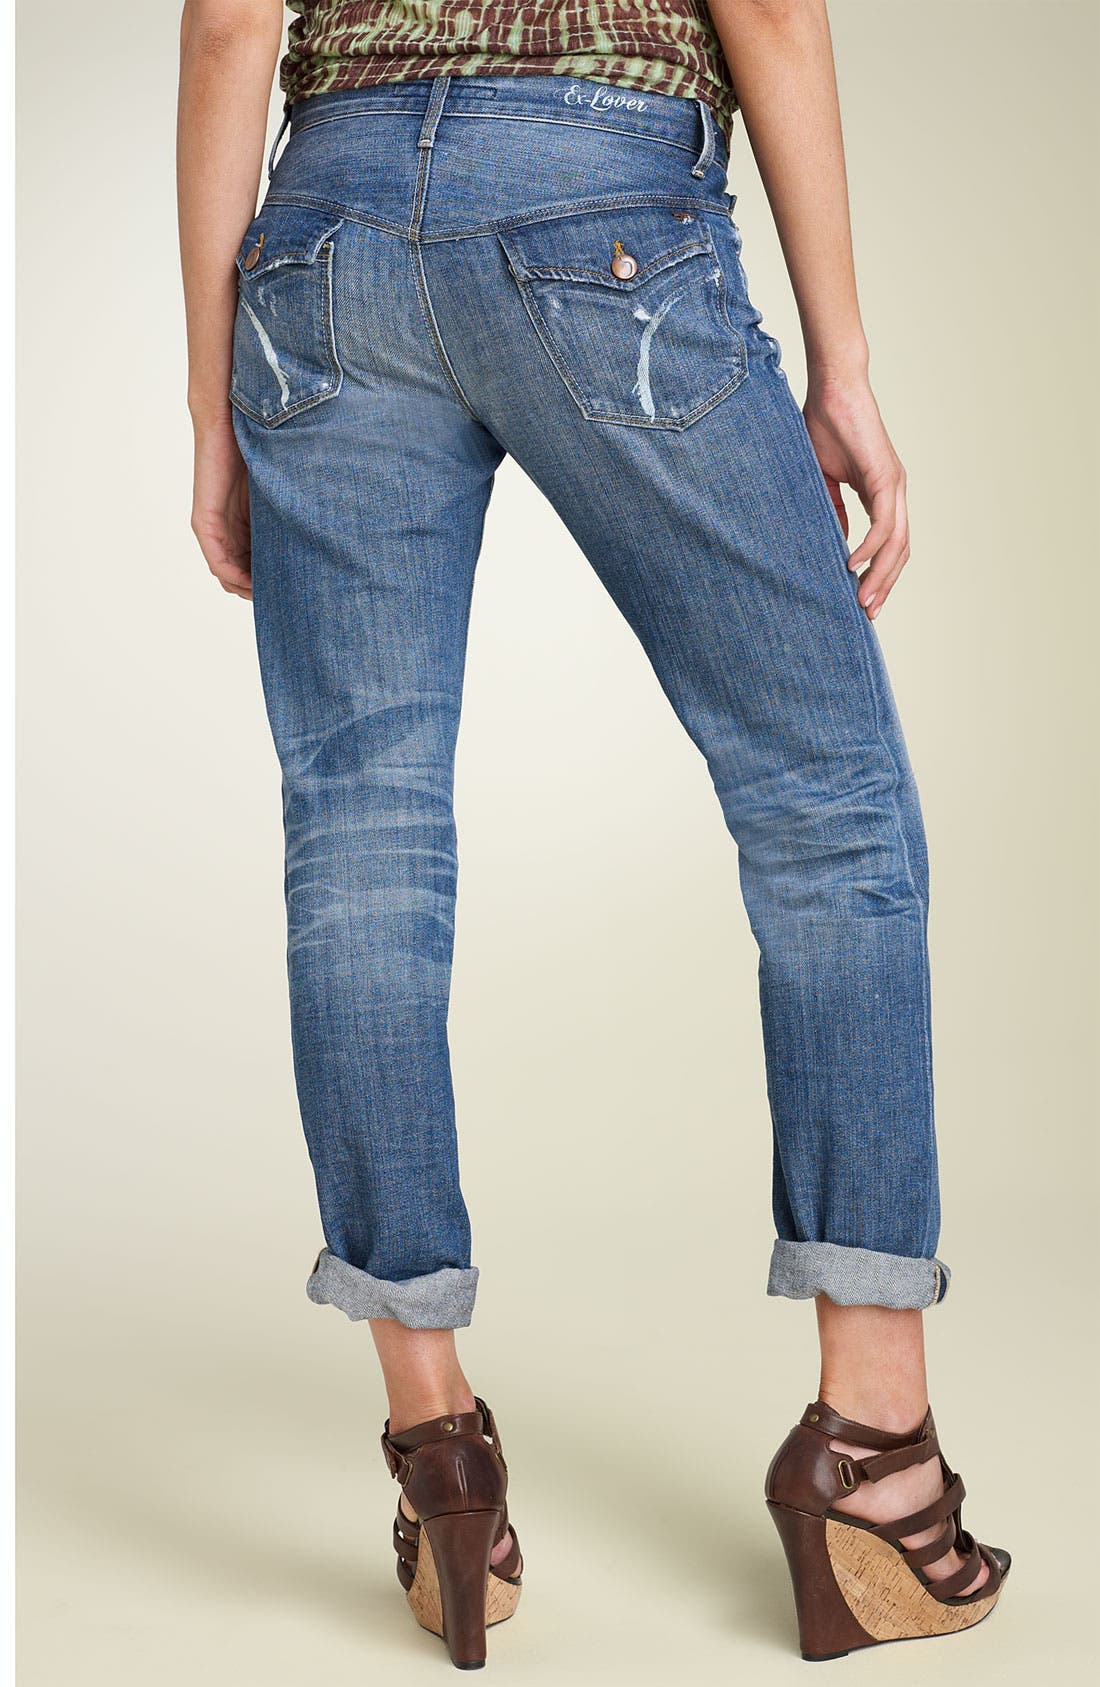 Main Image - Joe's Jeans 'Ex-Lover' Stretch Boyfriend Jeans (Shae Wash)